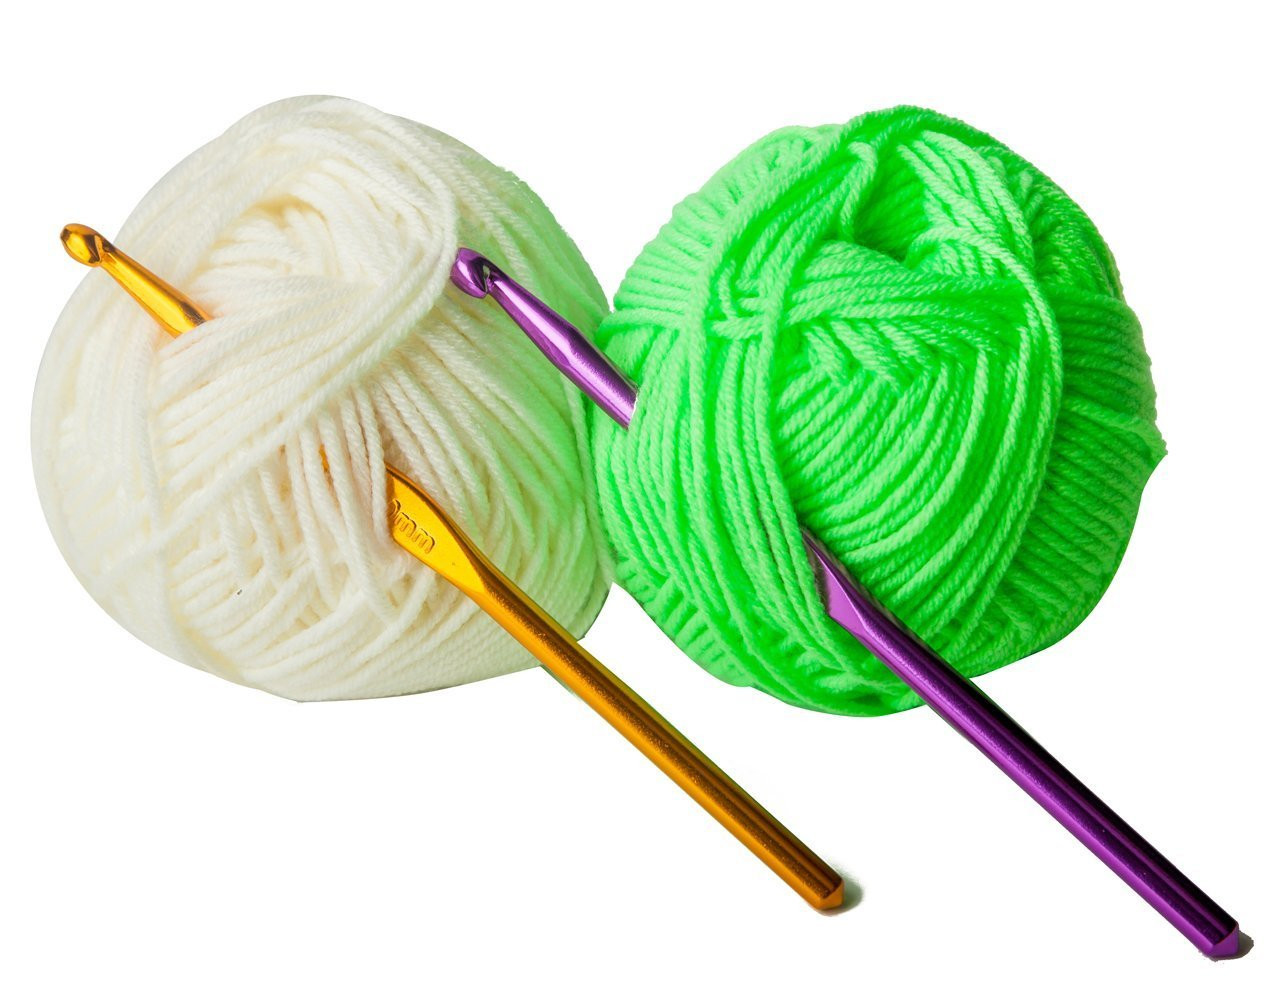 Crochet Hook and Yarn Inspirational Crocheting Needles and Yarn Creatys for Of Superb 44 Images Crochet Hook and Yarn